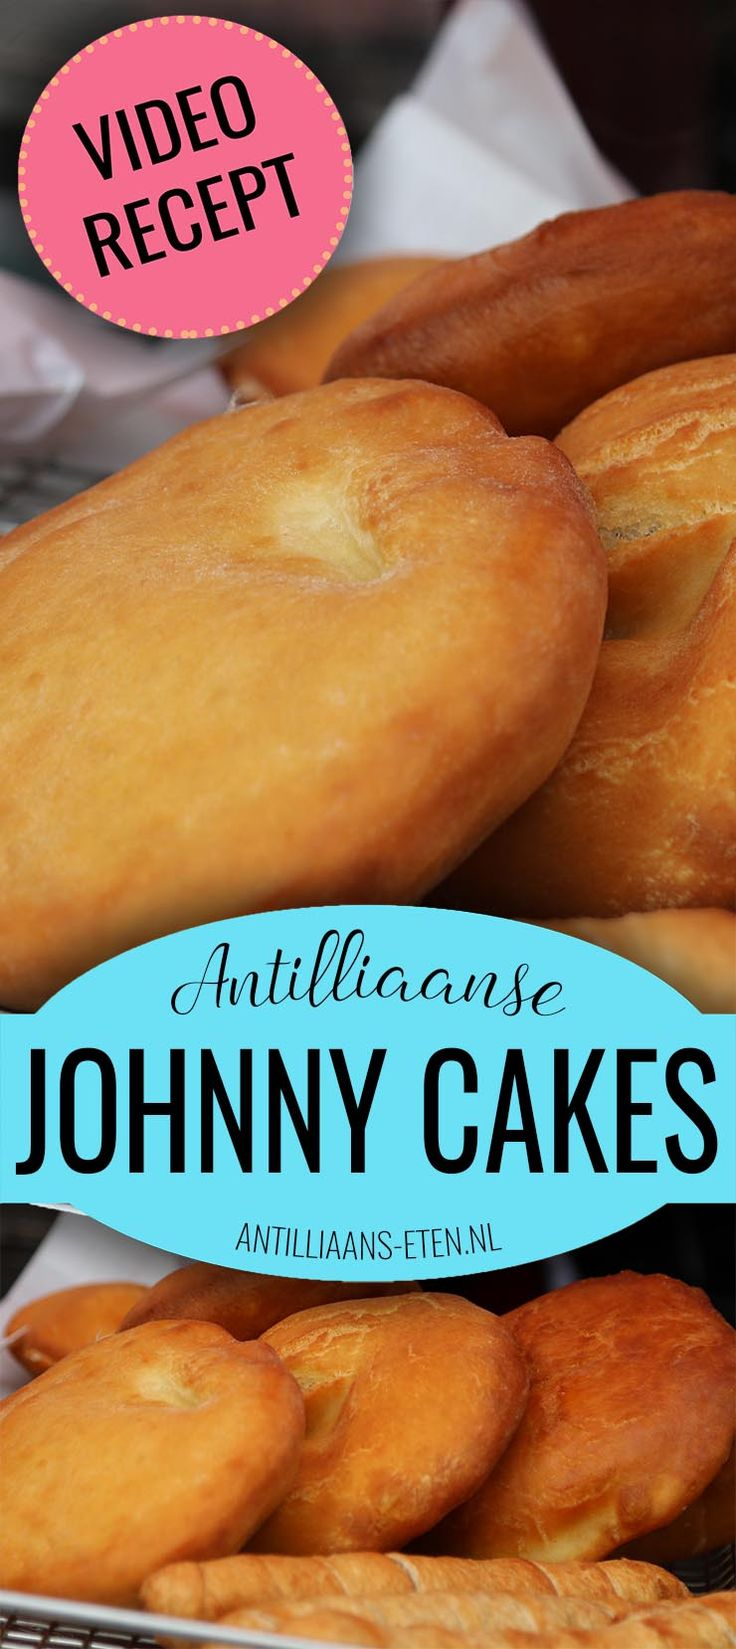 Antilliaanse Johnny Cake recept